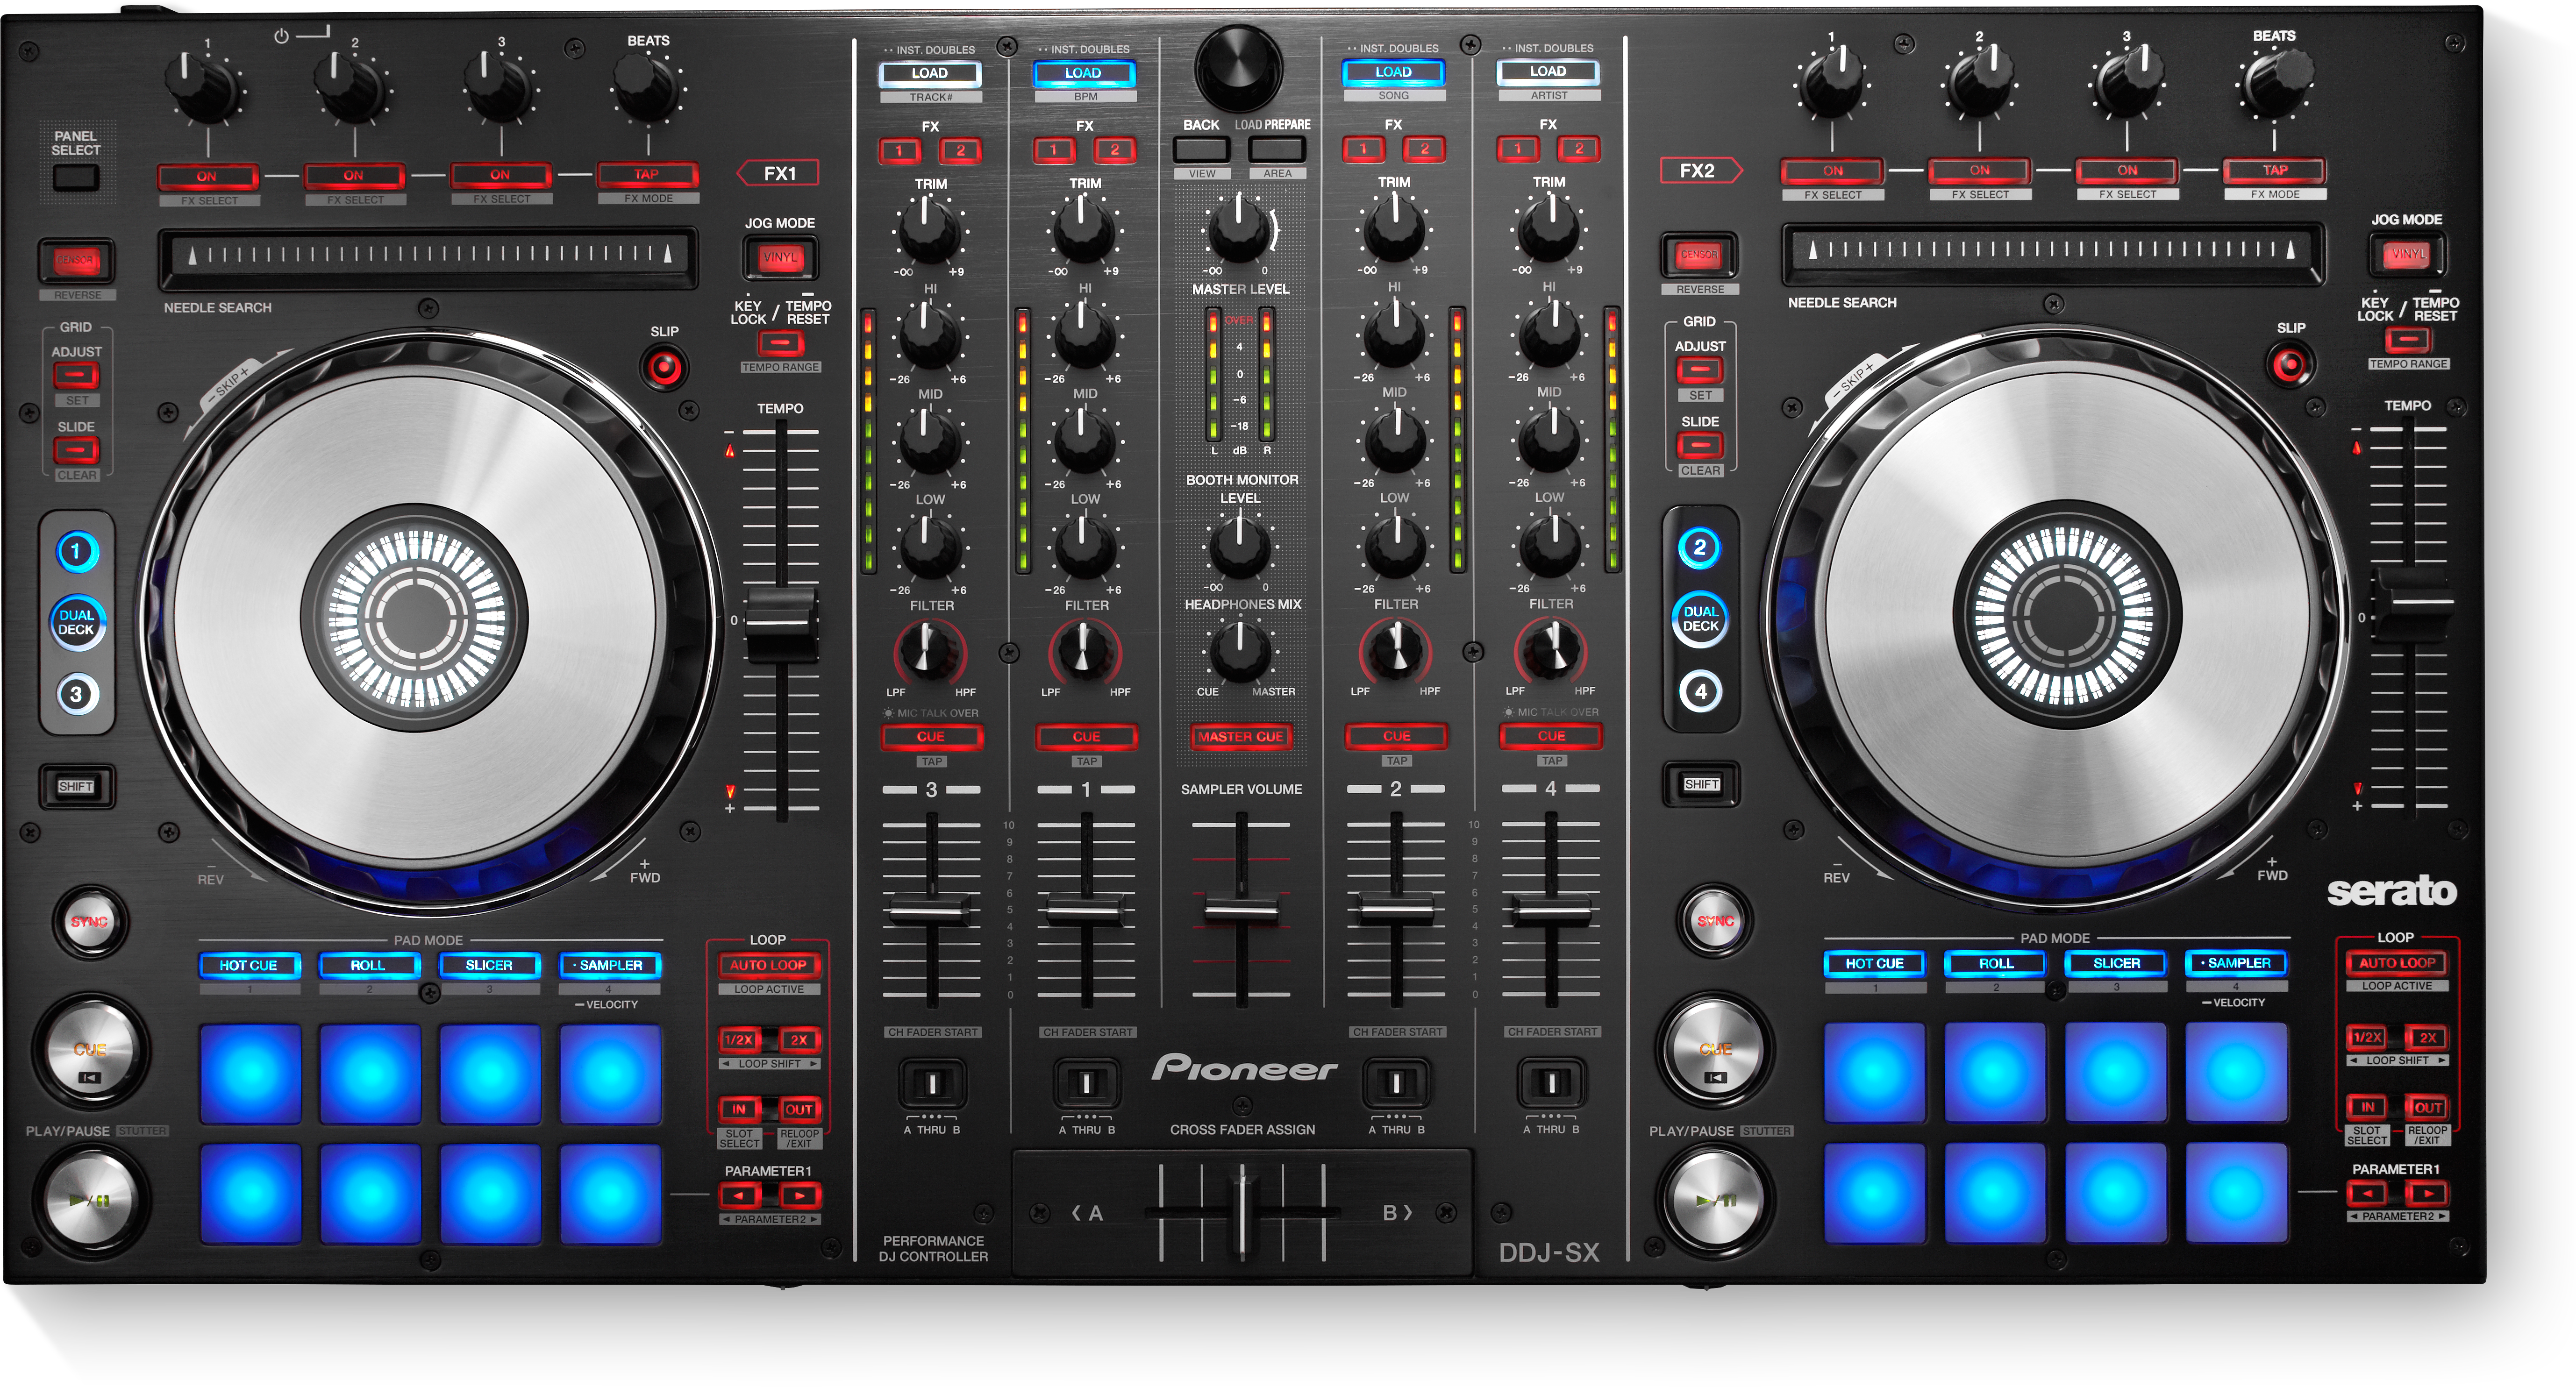 Pioneer ddj-sx controller & serato dj software free download